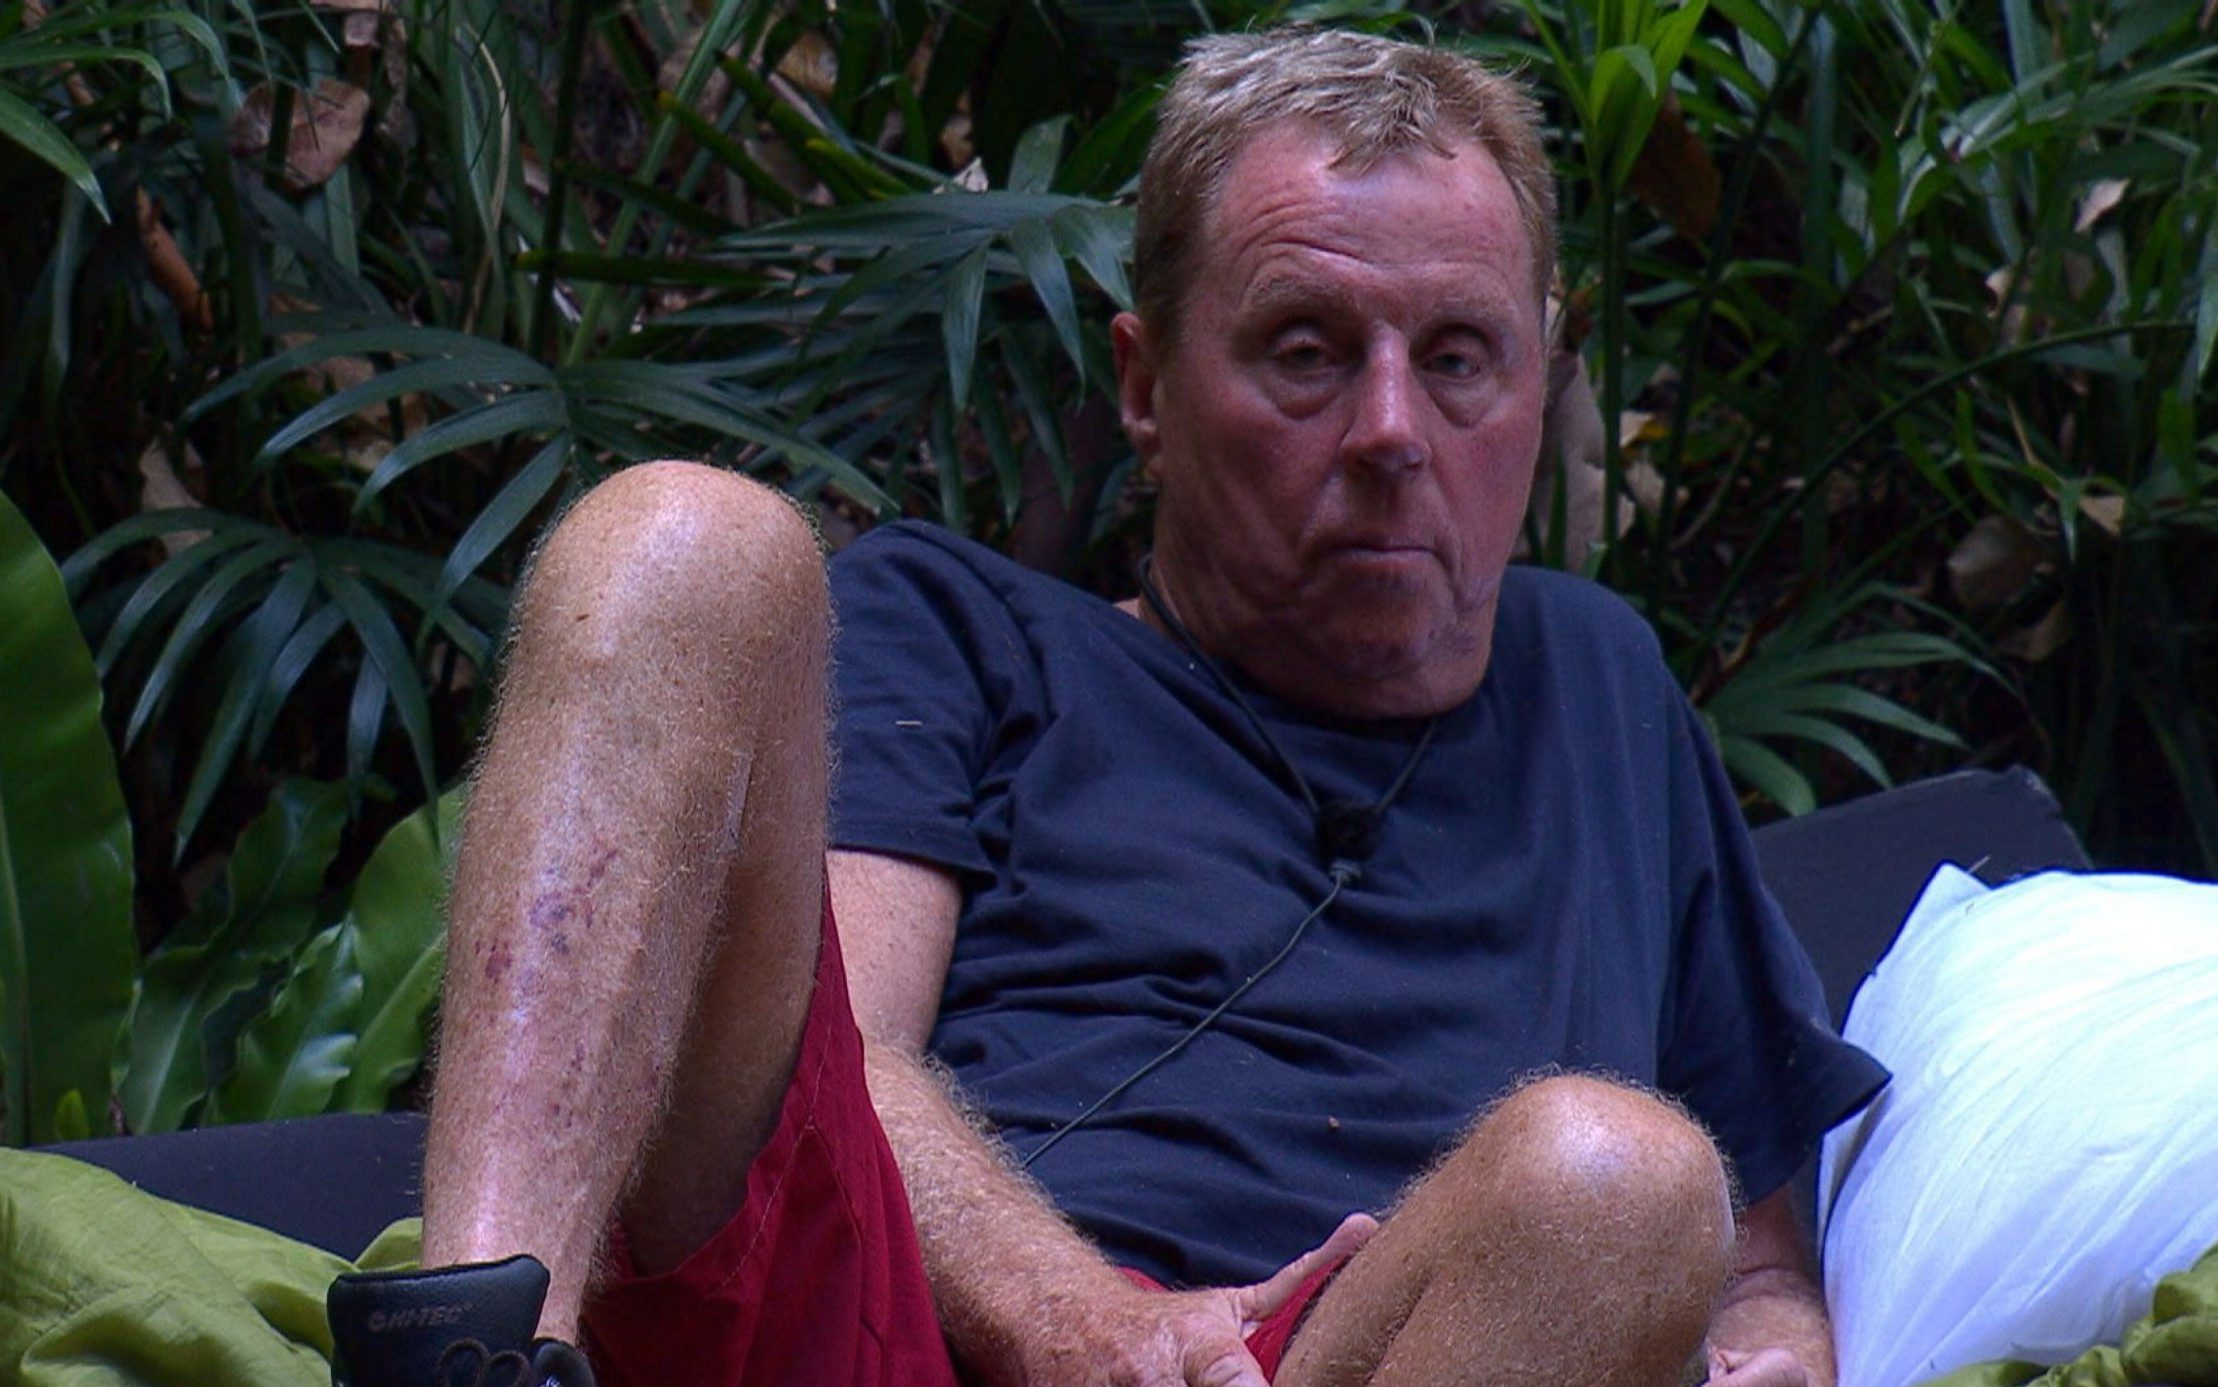 STRICT EMBARGO - NOT TO BE USED BEFORE 22:30 GMT, 01 DEC 2018 - EDITORIAL USE ONLY Mandatory Credit: Photo by ITV/REX (10010708jb) Outback Shack and Return: Short Fuse - Harry Redknapp 'I'm a Celebrity... Get Me Out of Here!' TV Show, Series 18, Australia - 01 Dec 2018